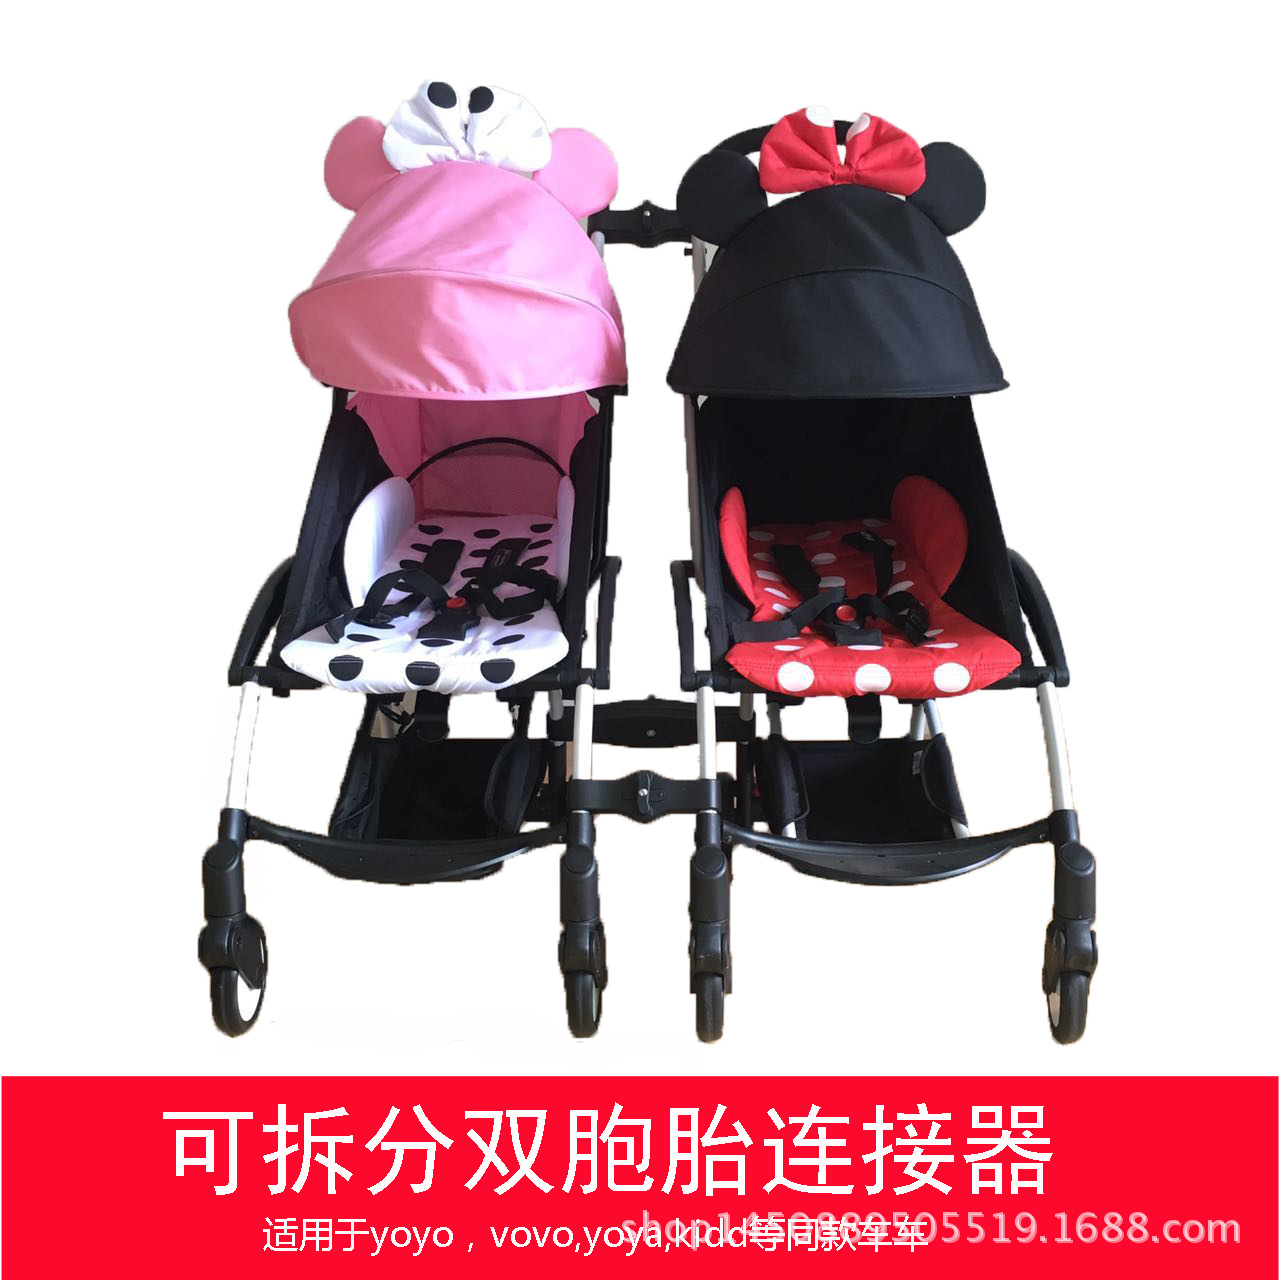 3pcs Coupler Bush insert into the strollers for babyzen yoyo baby yoya stroll TP